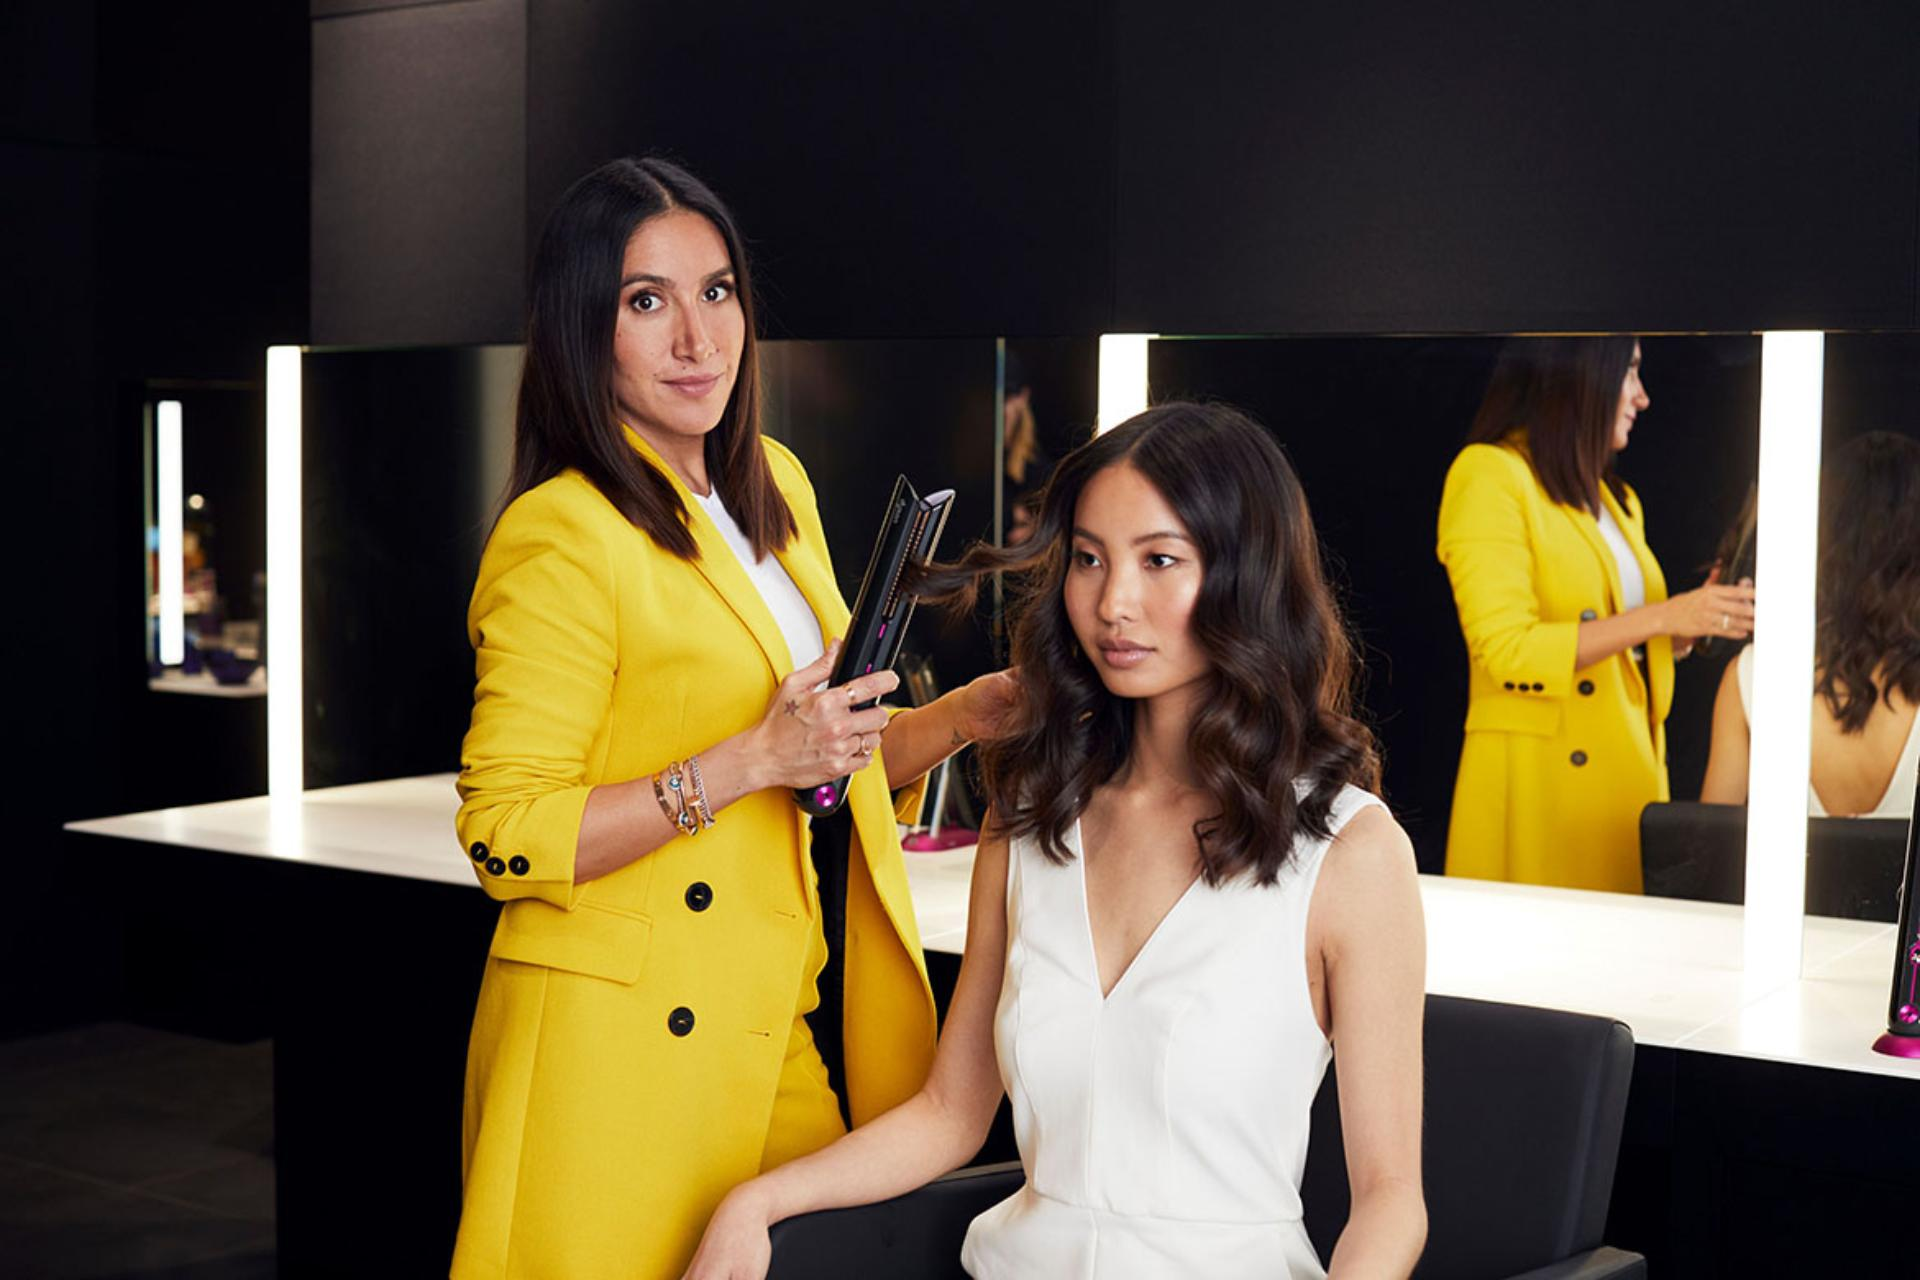 Dyson ambassadors reveal how to style hair at home